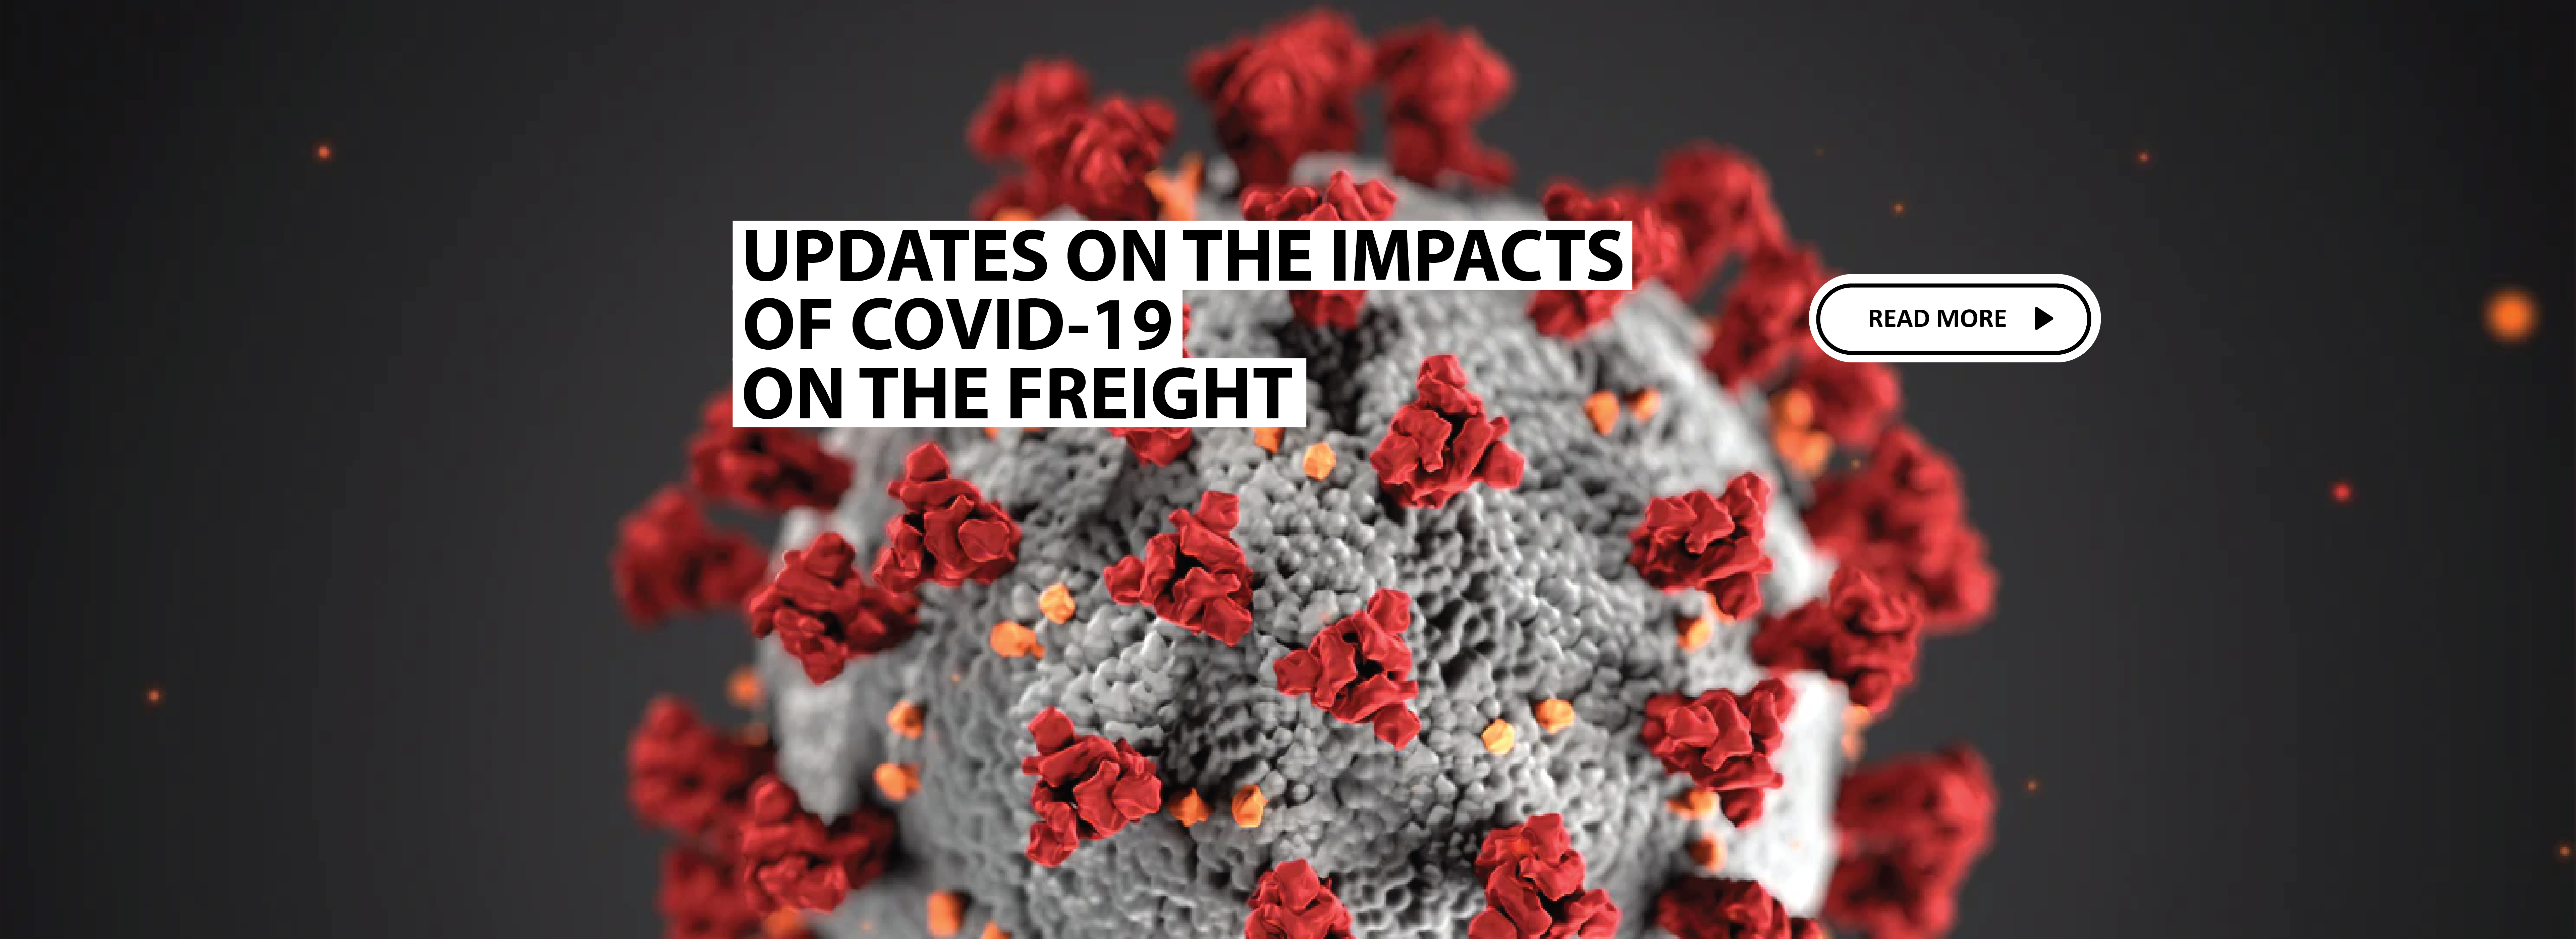 COVID-19 freight impact updates